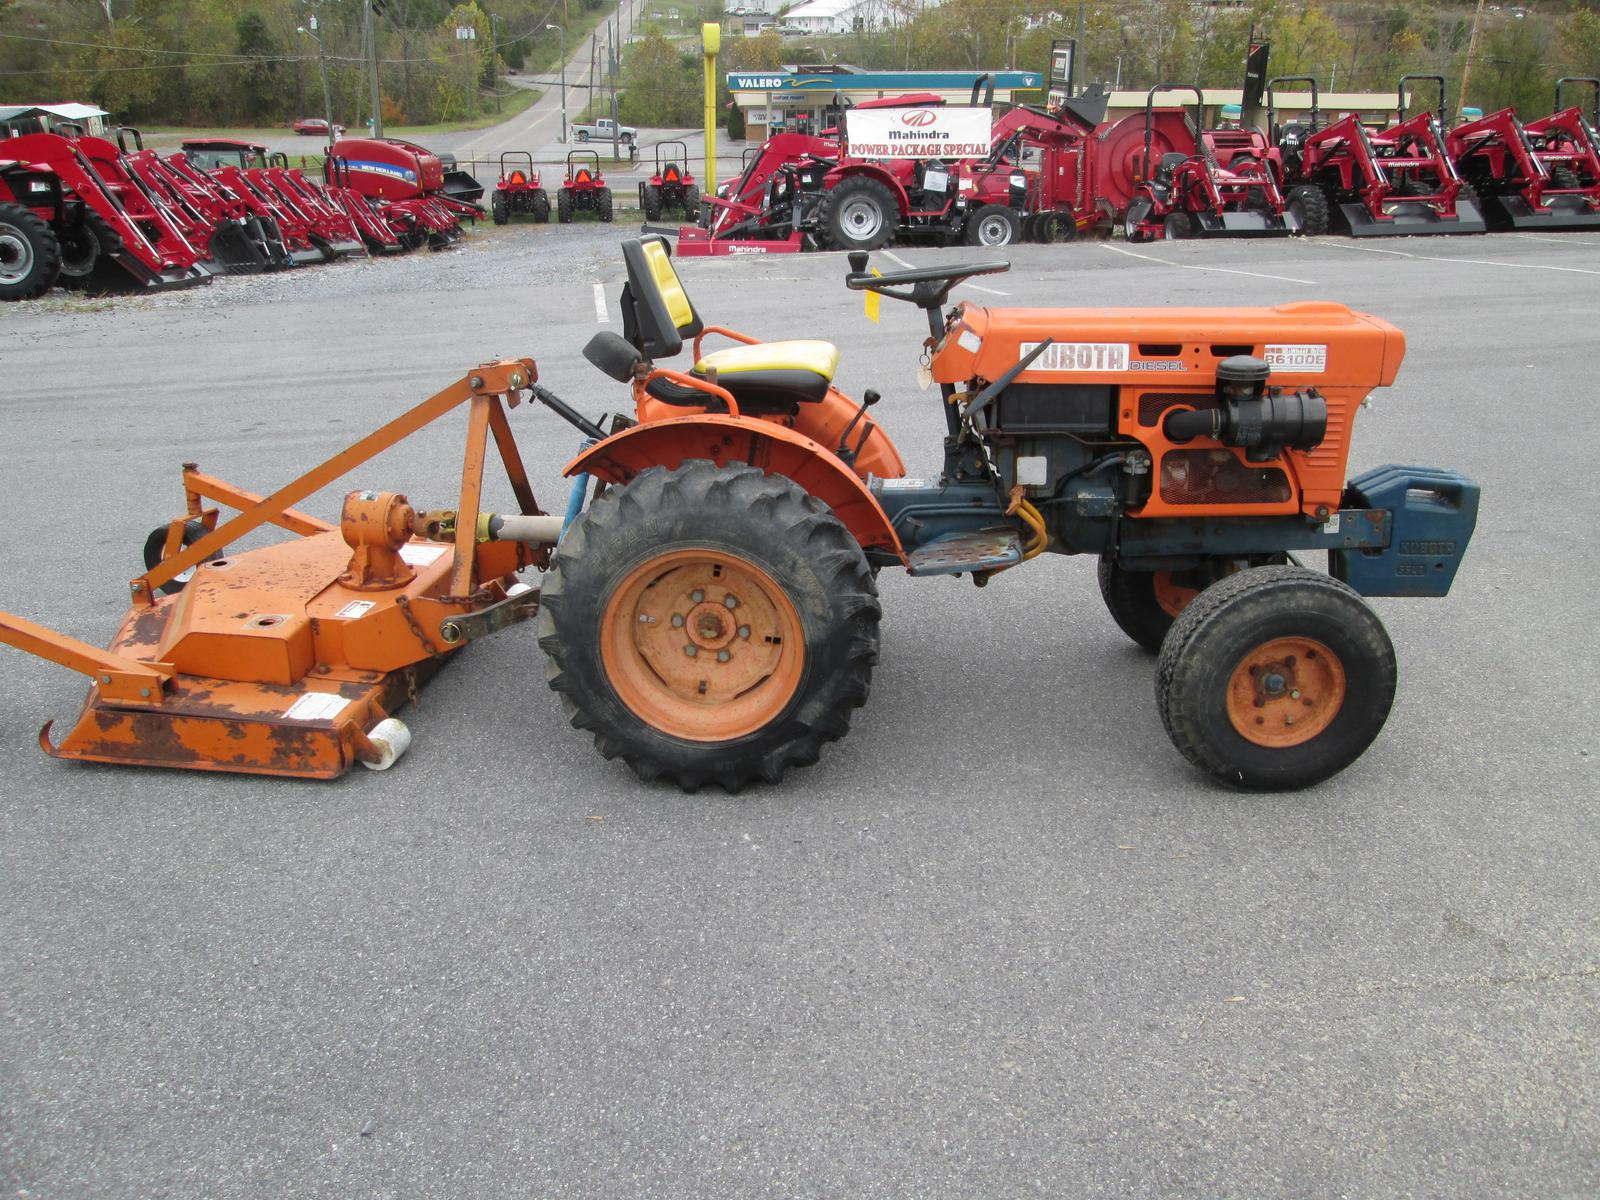 Kubota tractors for sale in kentucky - Kubota B6100e For Sale In Kingsport Tn Cox Tractor Co Inc 423 288 2451